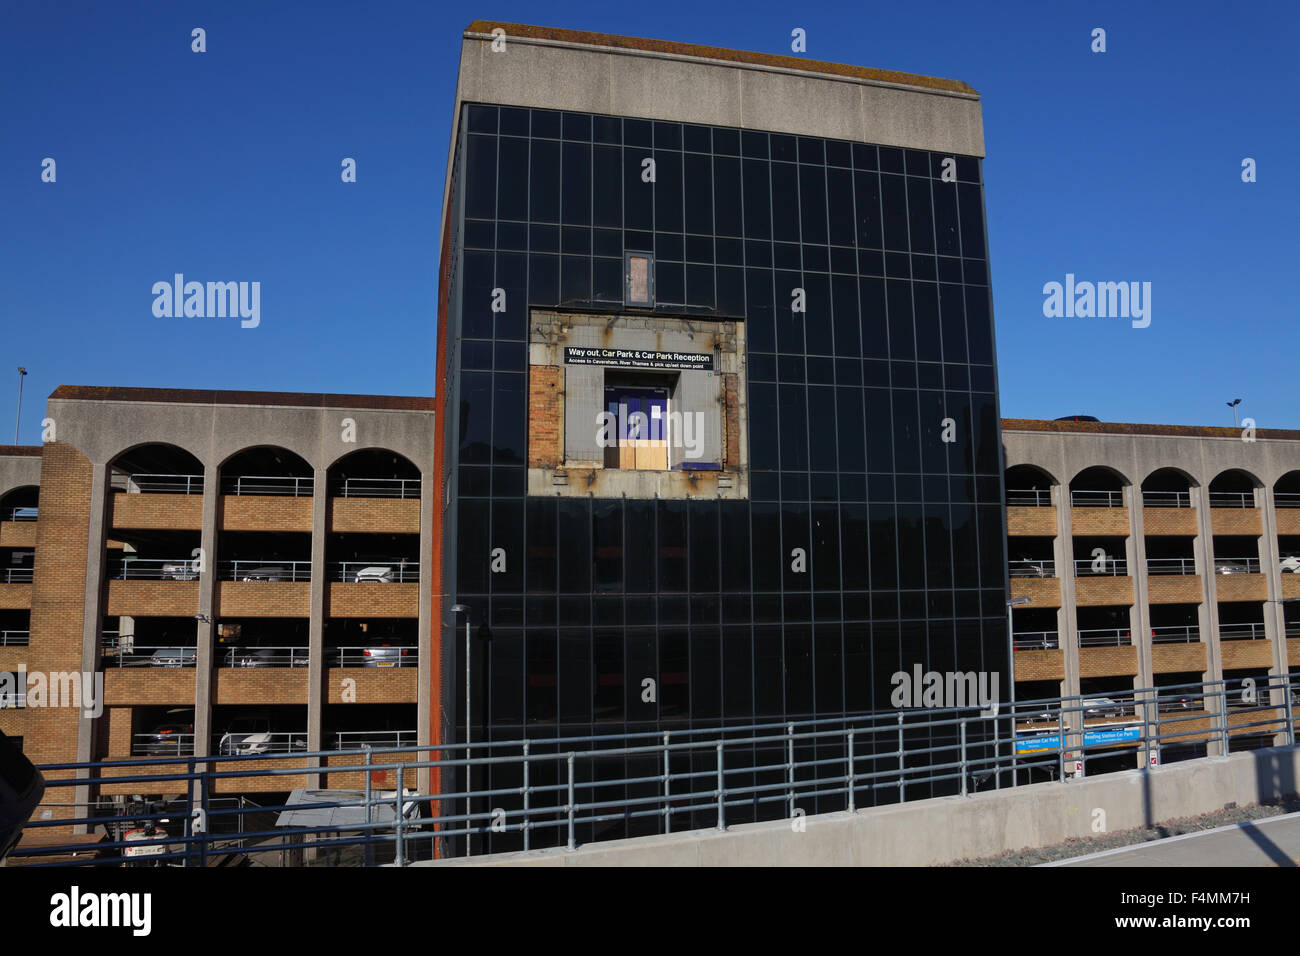 A high level entrance to the multi storey car park where to entrance walkway has now been removed. - Stock Image